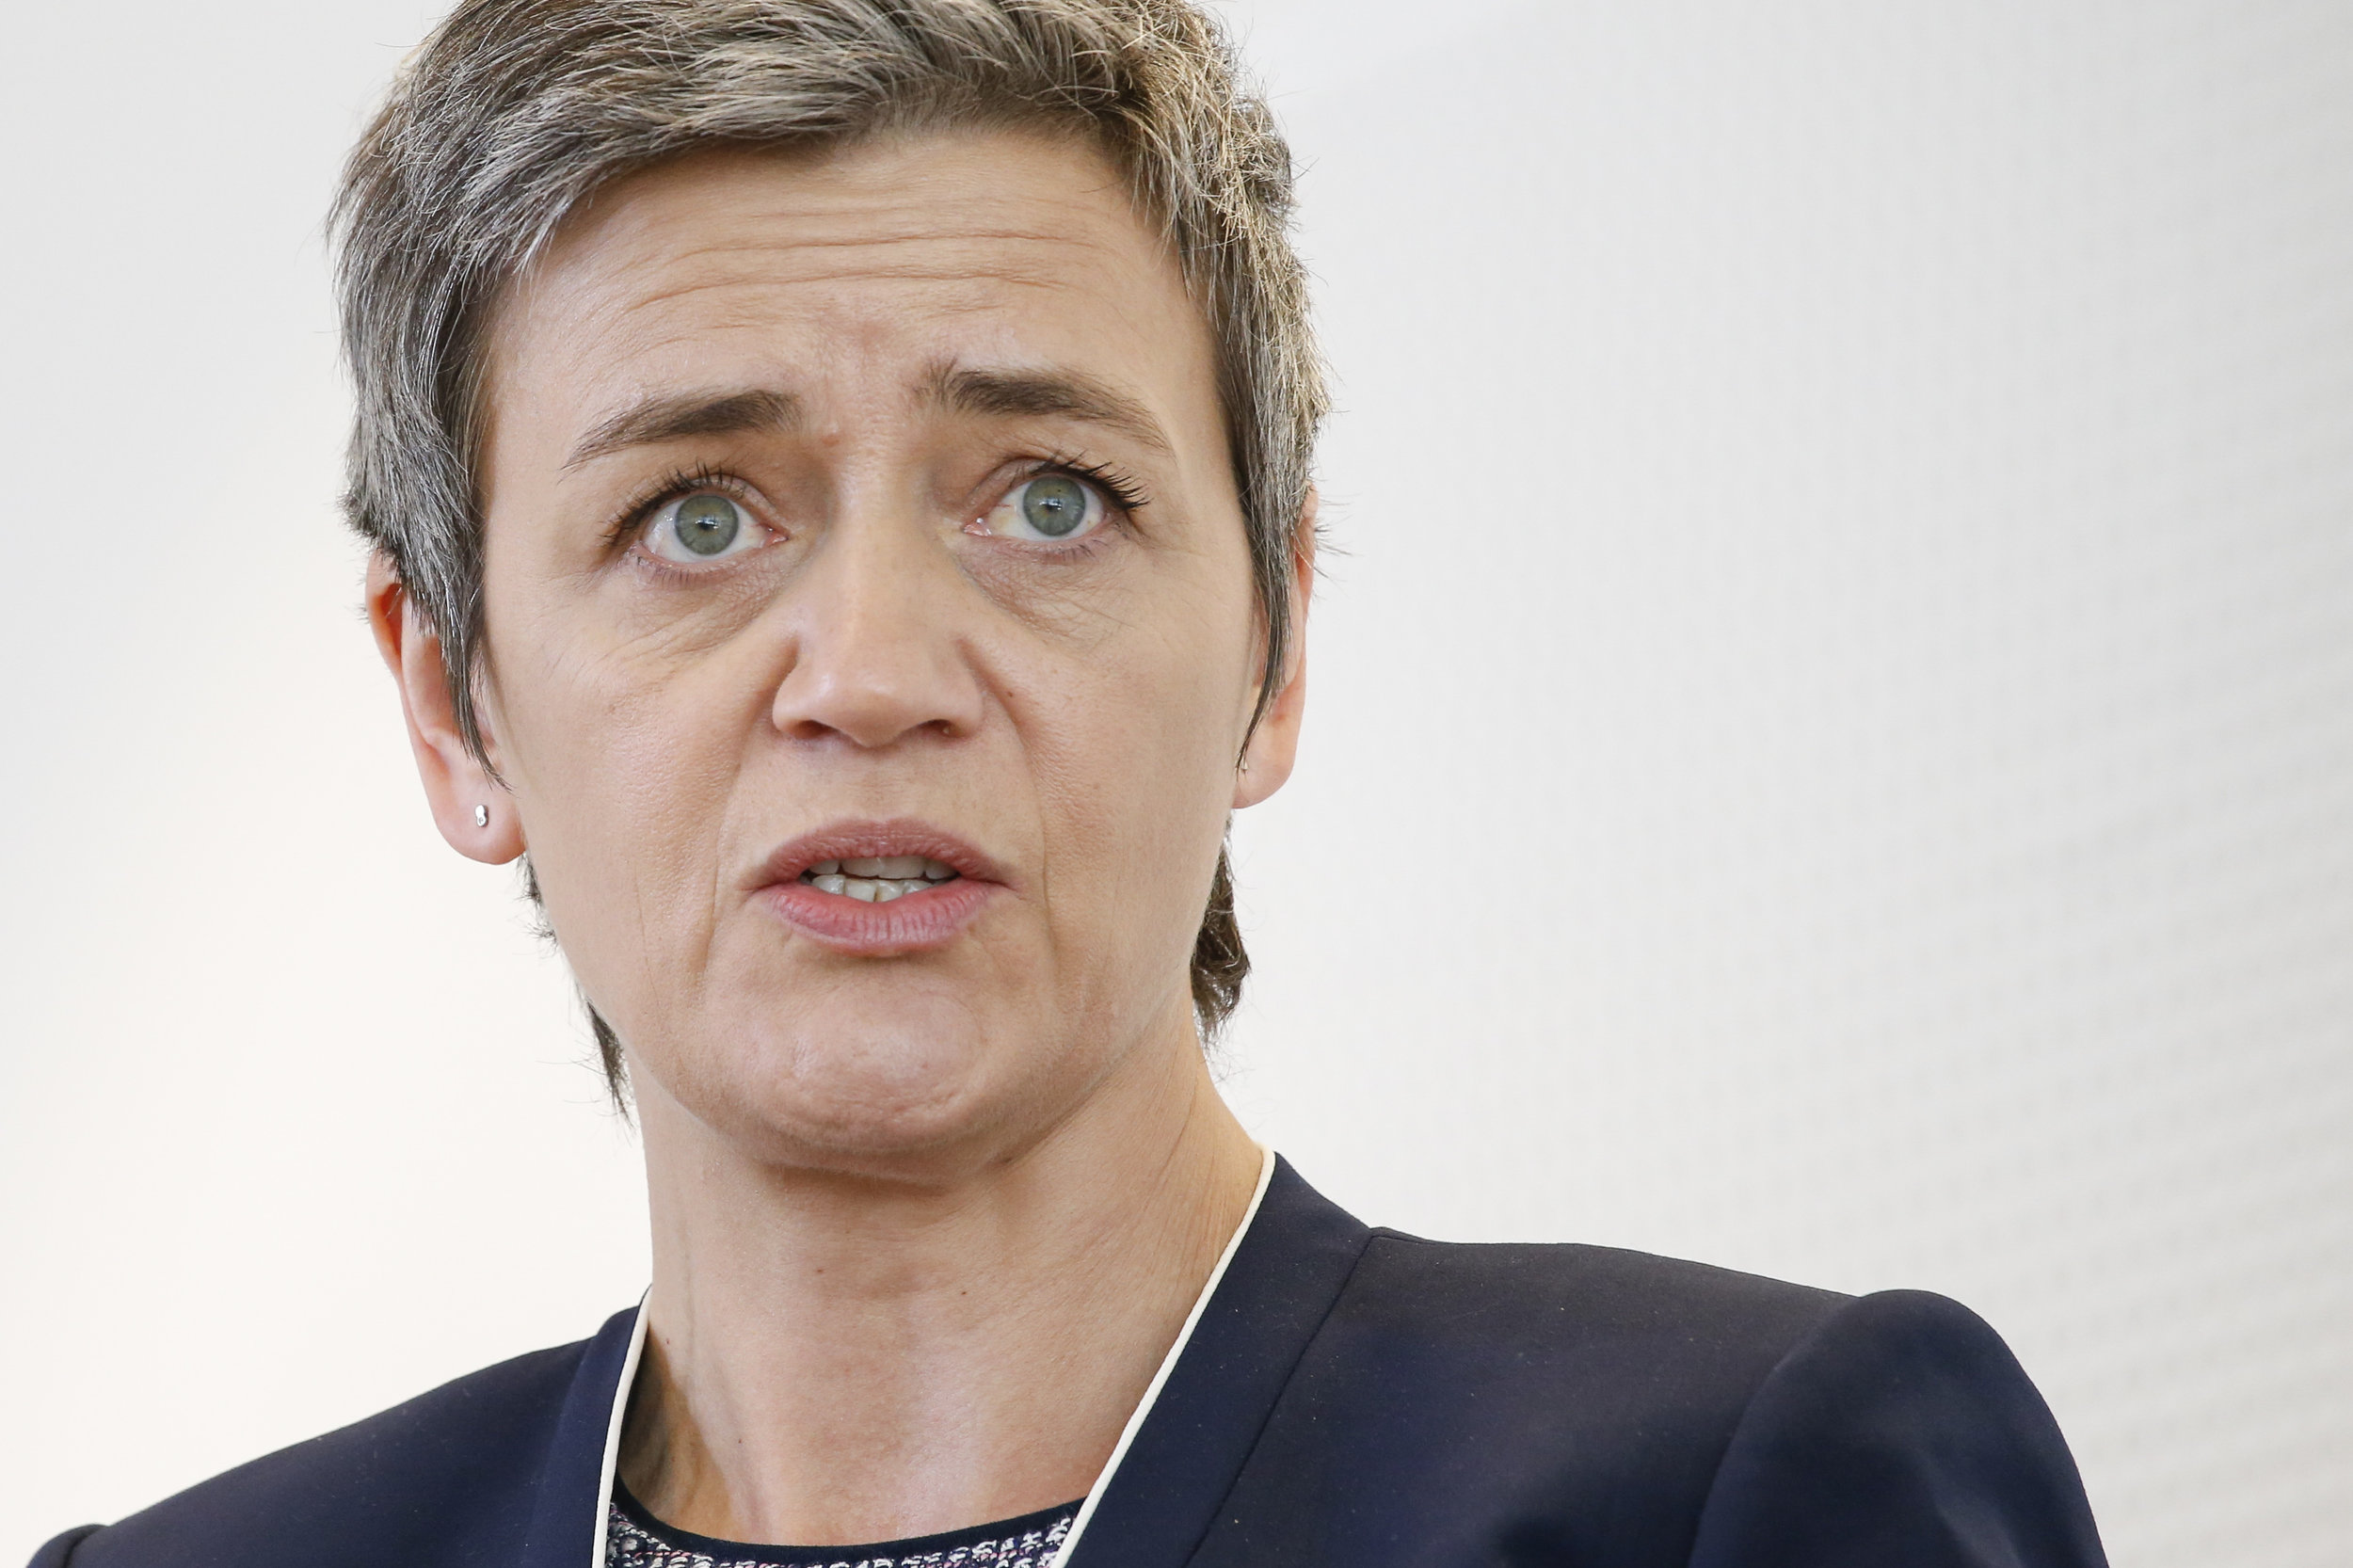 Conversation_with_Margrethe_Vestager,_European_Commissioner_for_Competition_(17222242662).jpg